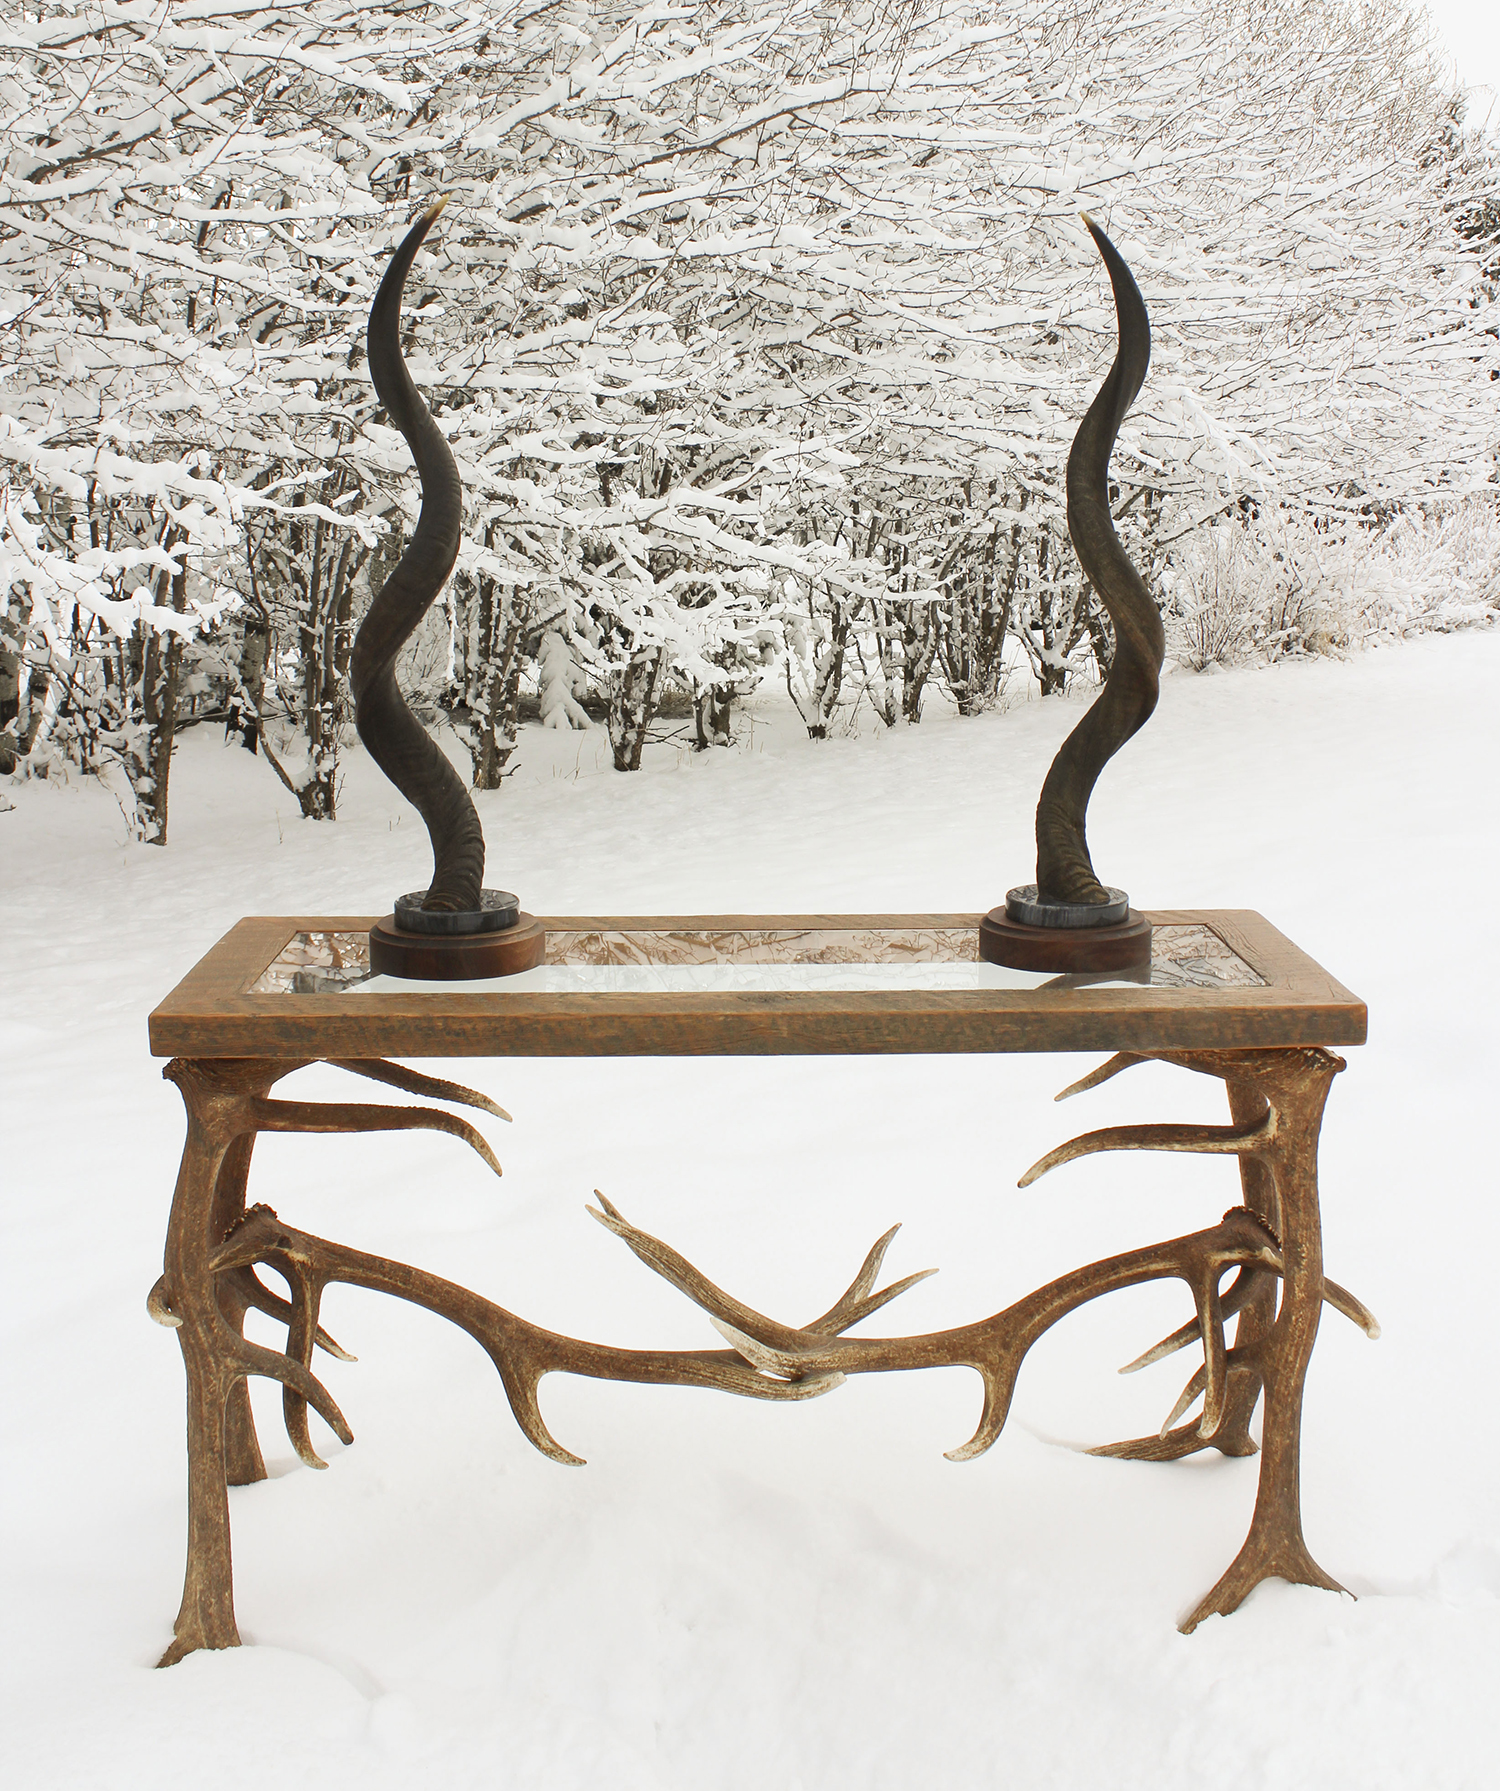 Kudo Horn mounted on marble and wooden base for sale with elk sofa table